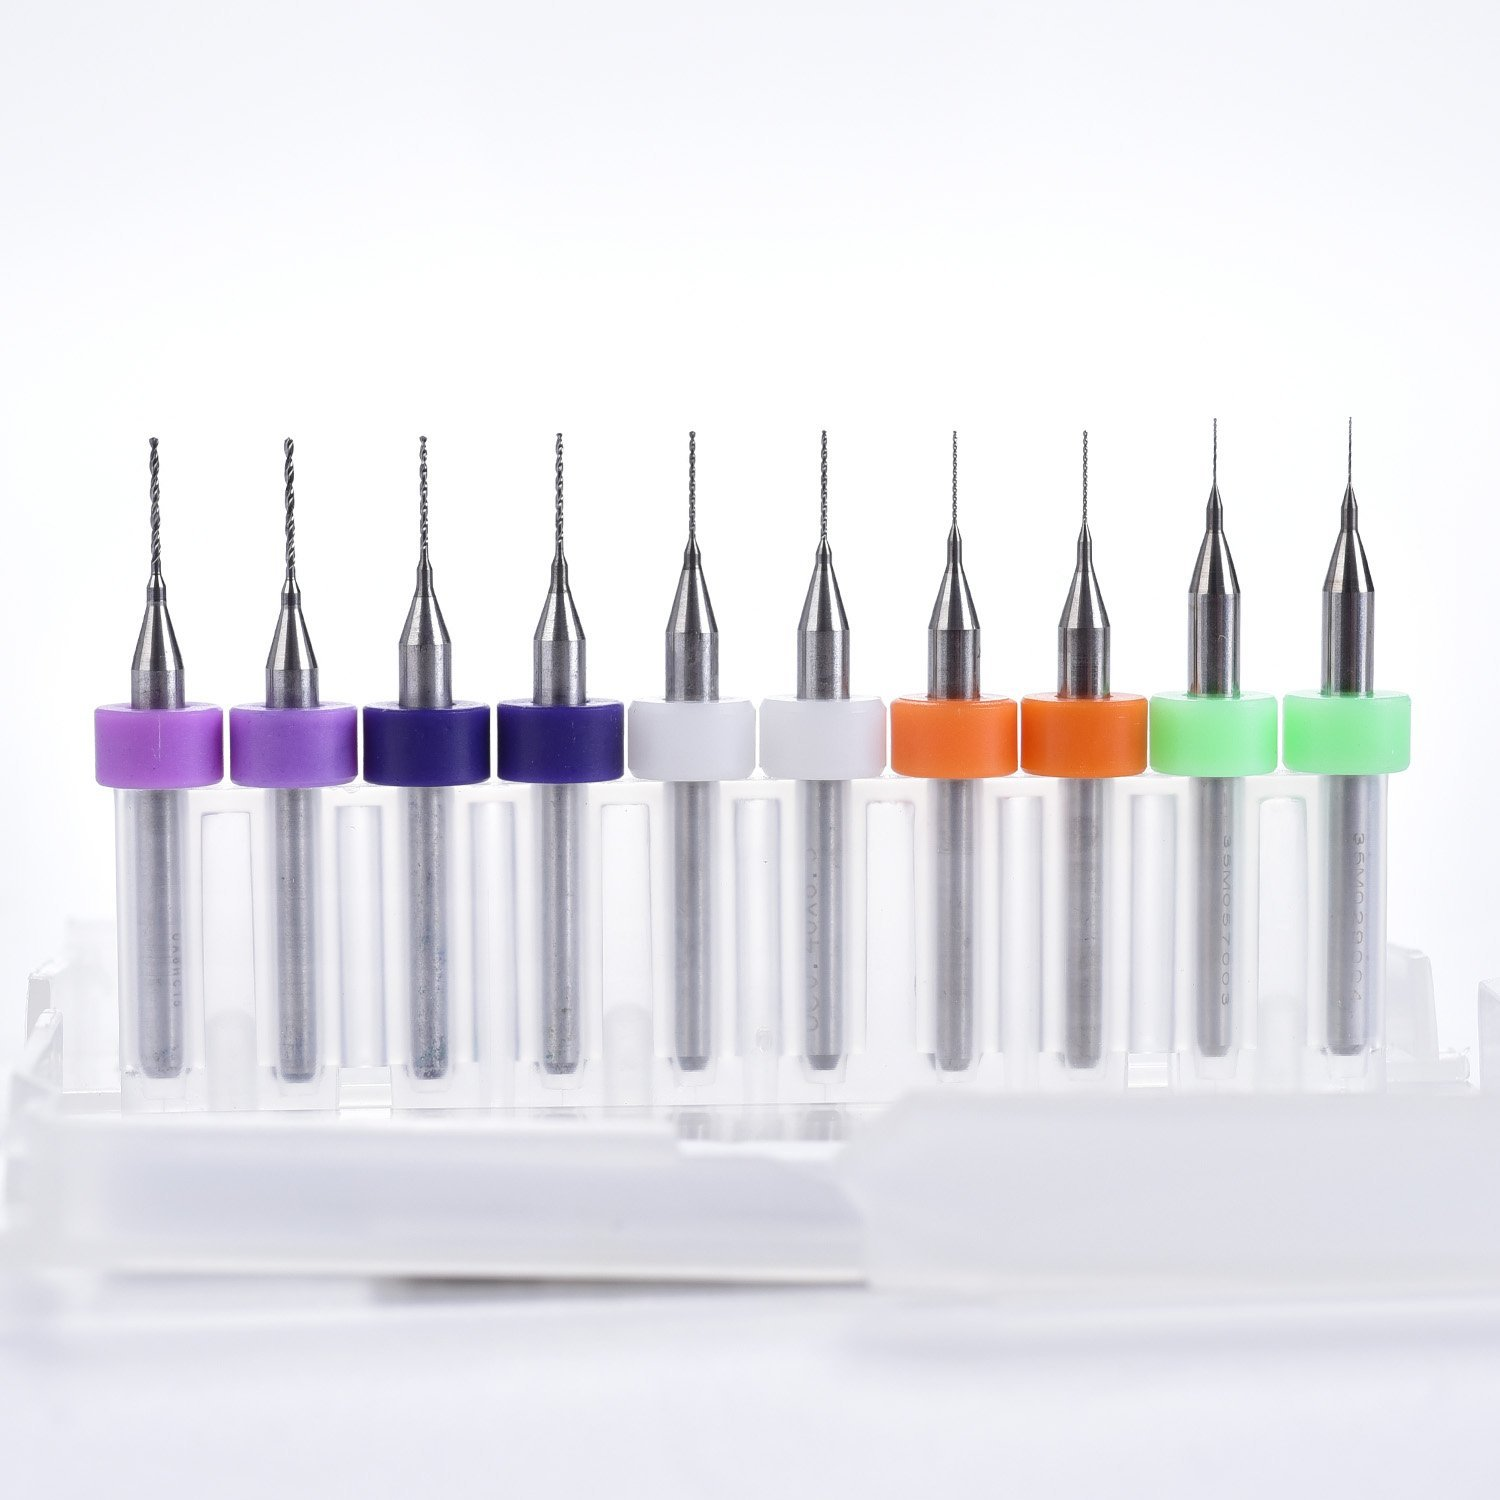 0.2mm 0.3mm 0.4mm 0.5mm 0.6mm Drill Bits 3D Printer Kit Extruder Nozzle Head Cleaner Bits Pack of 10